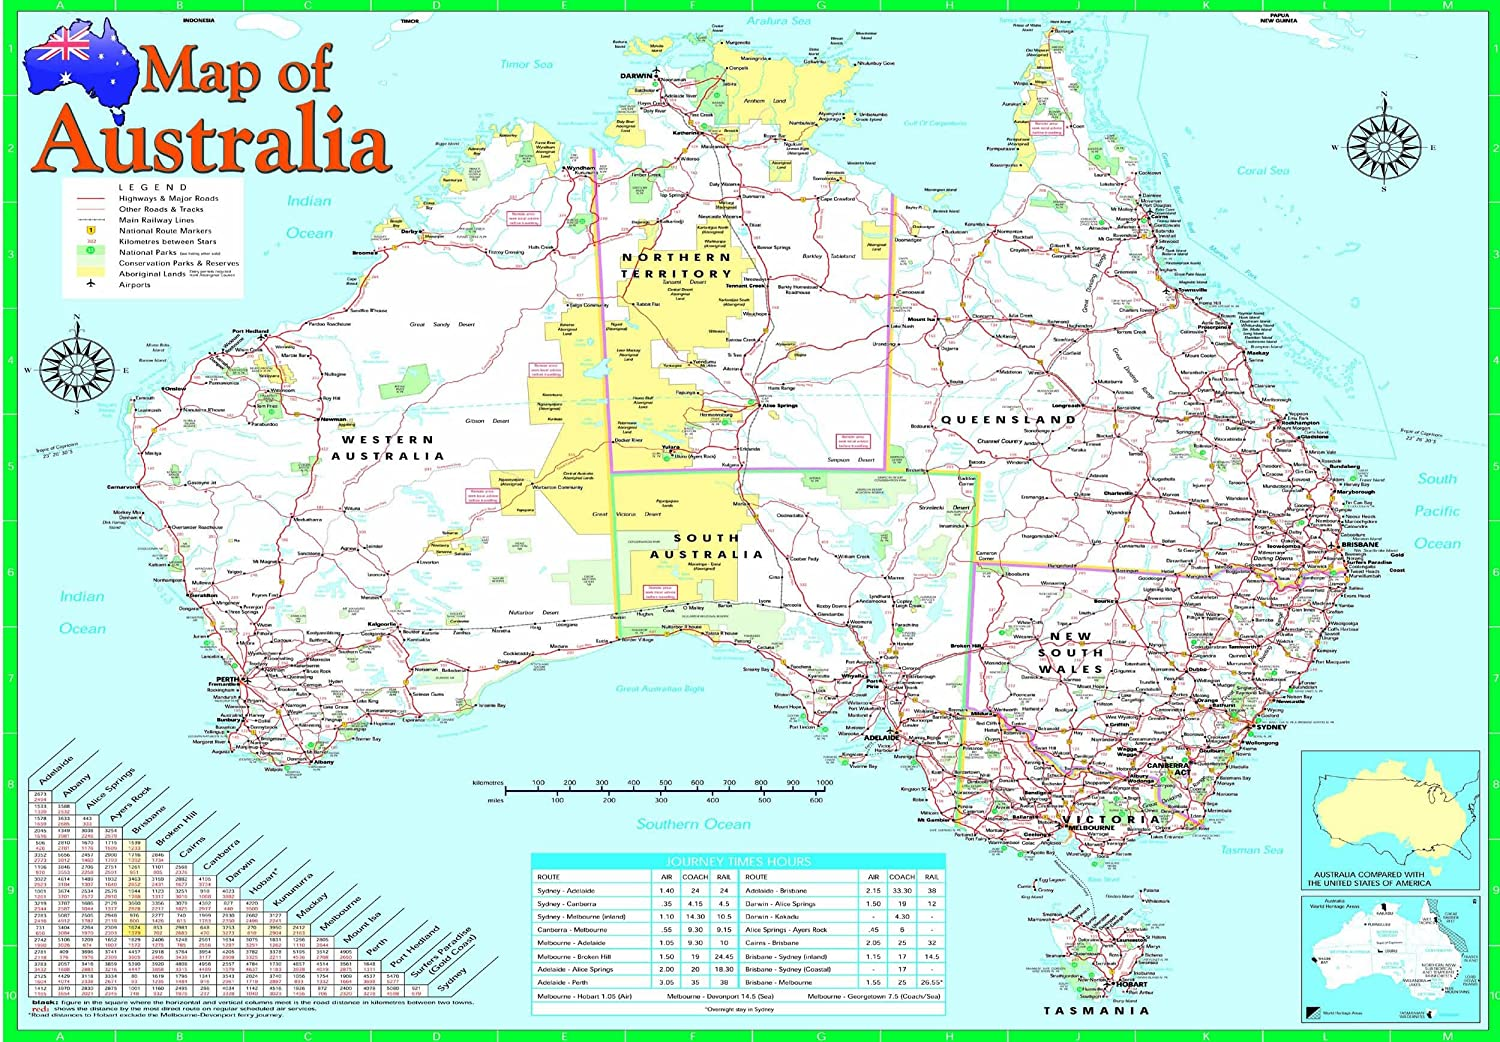 Giant Map Of Australia.Map Marketing World Map 3d Effect Giant Framed 315 Miles To 1 Inch